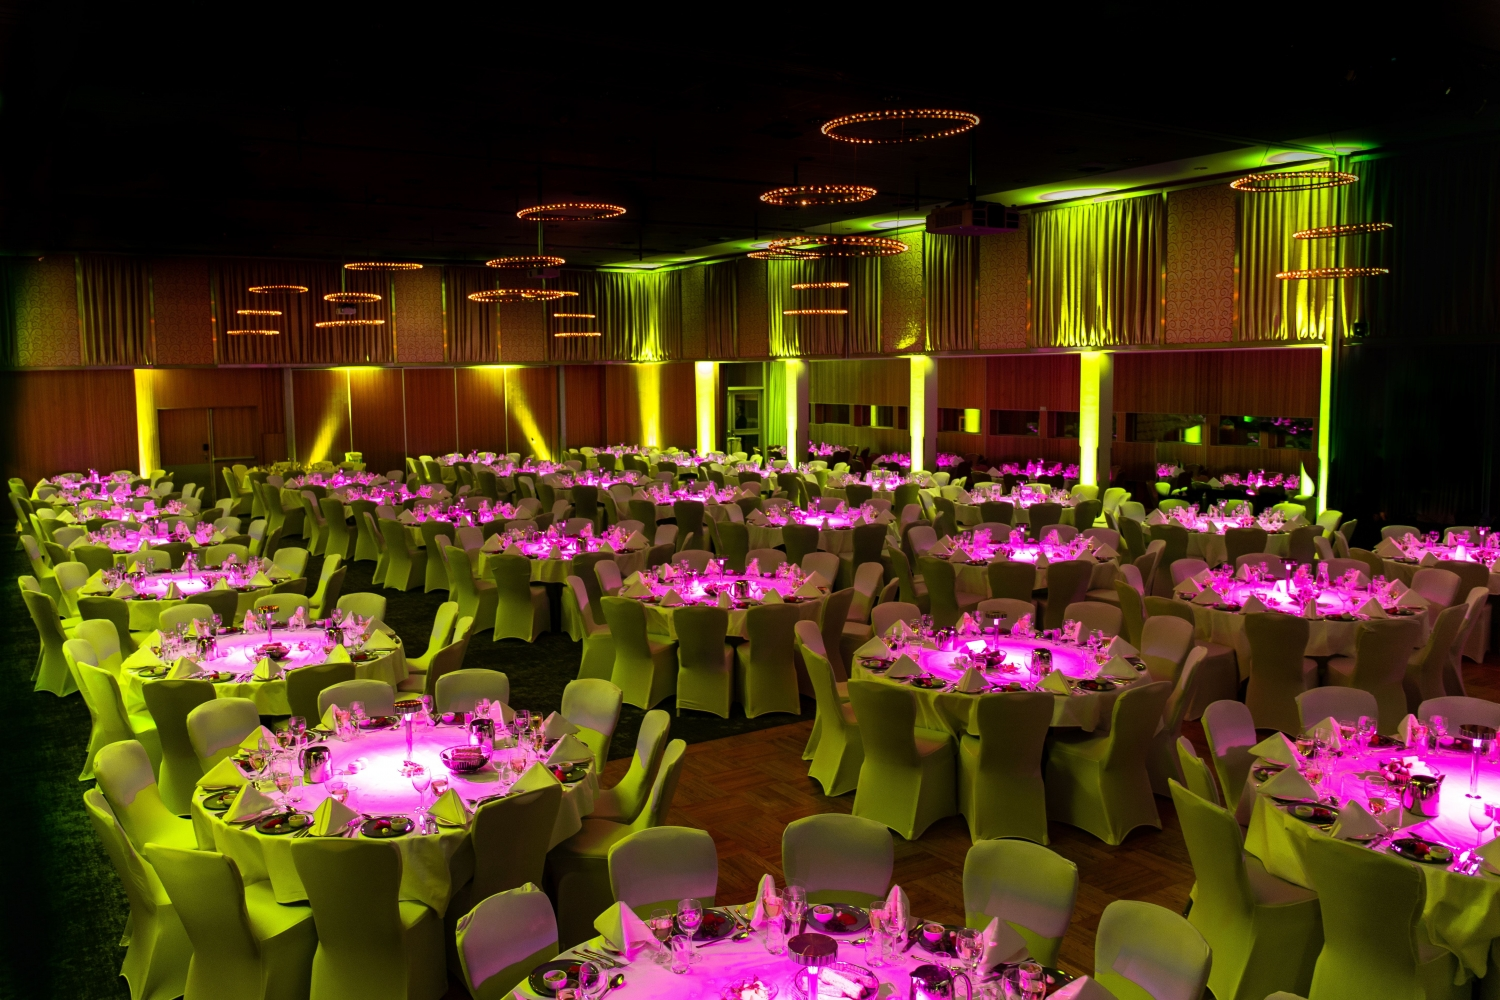 a room decorated to a banquet